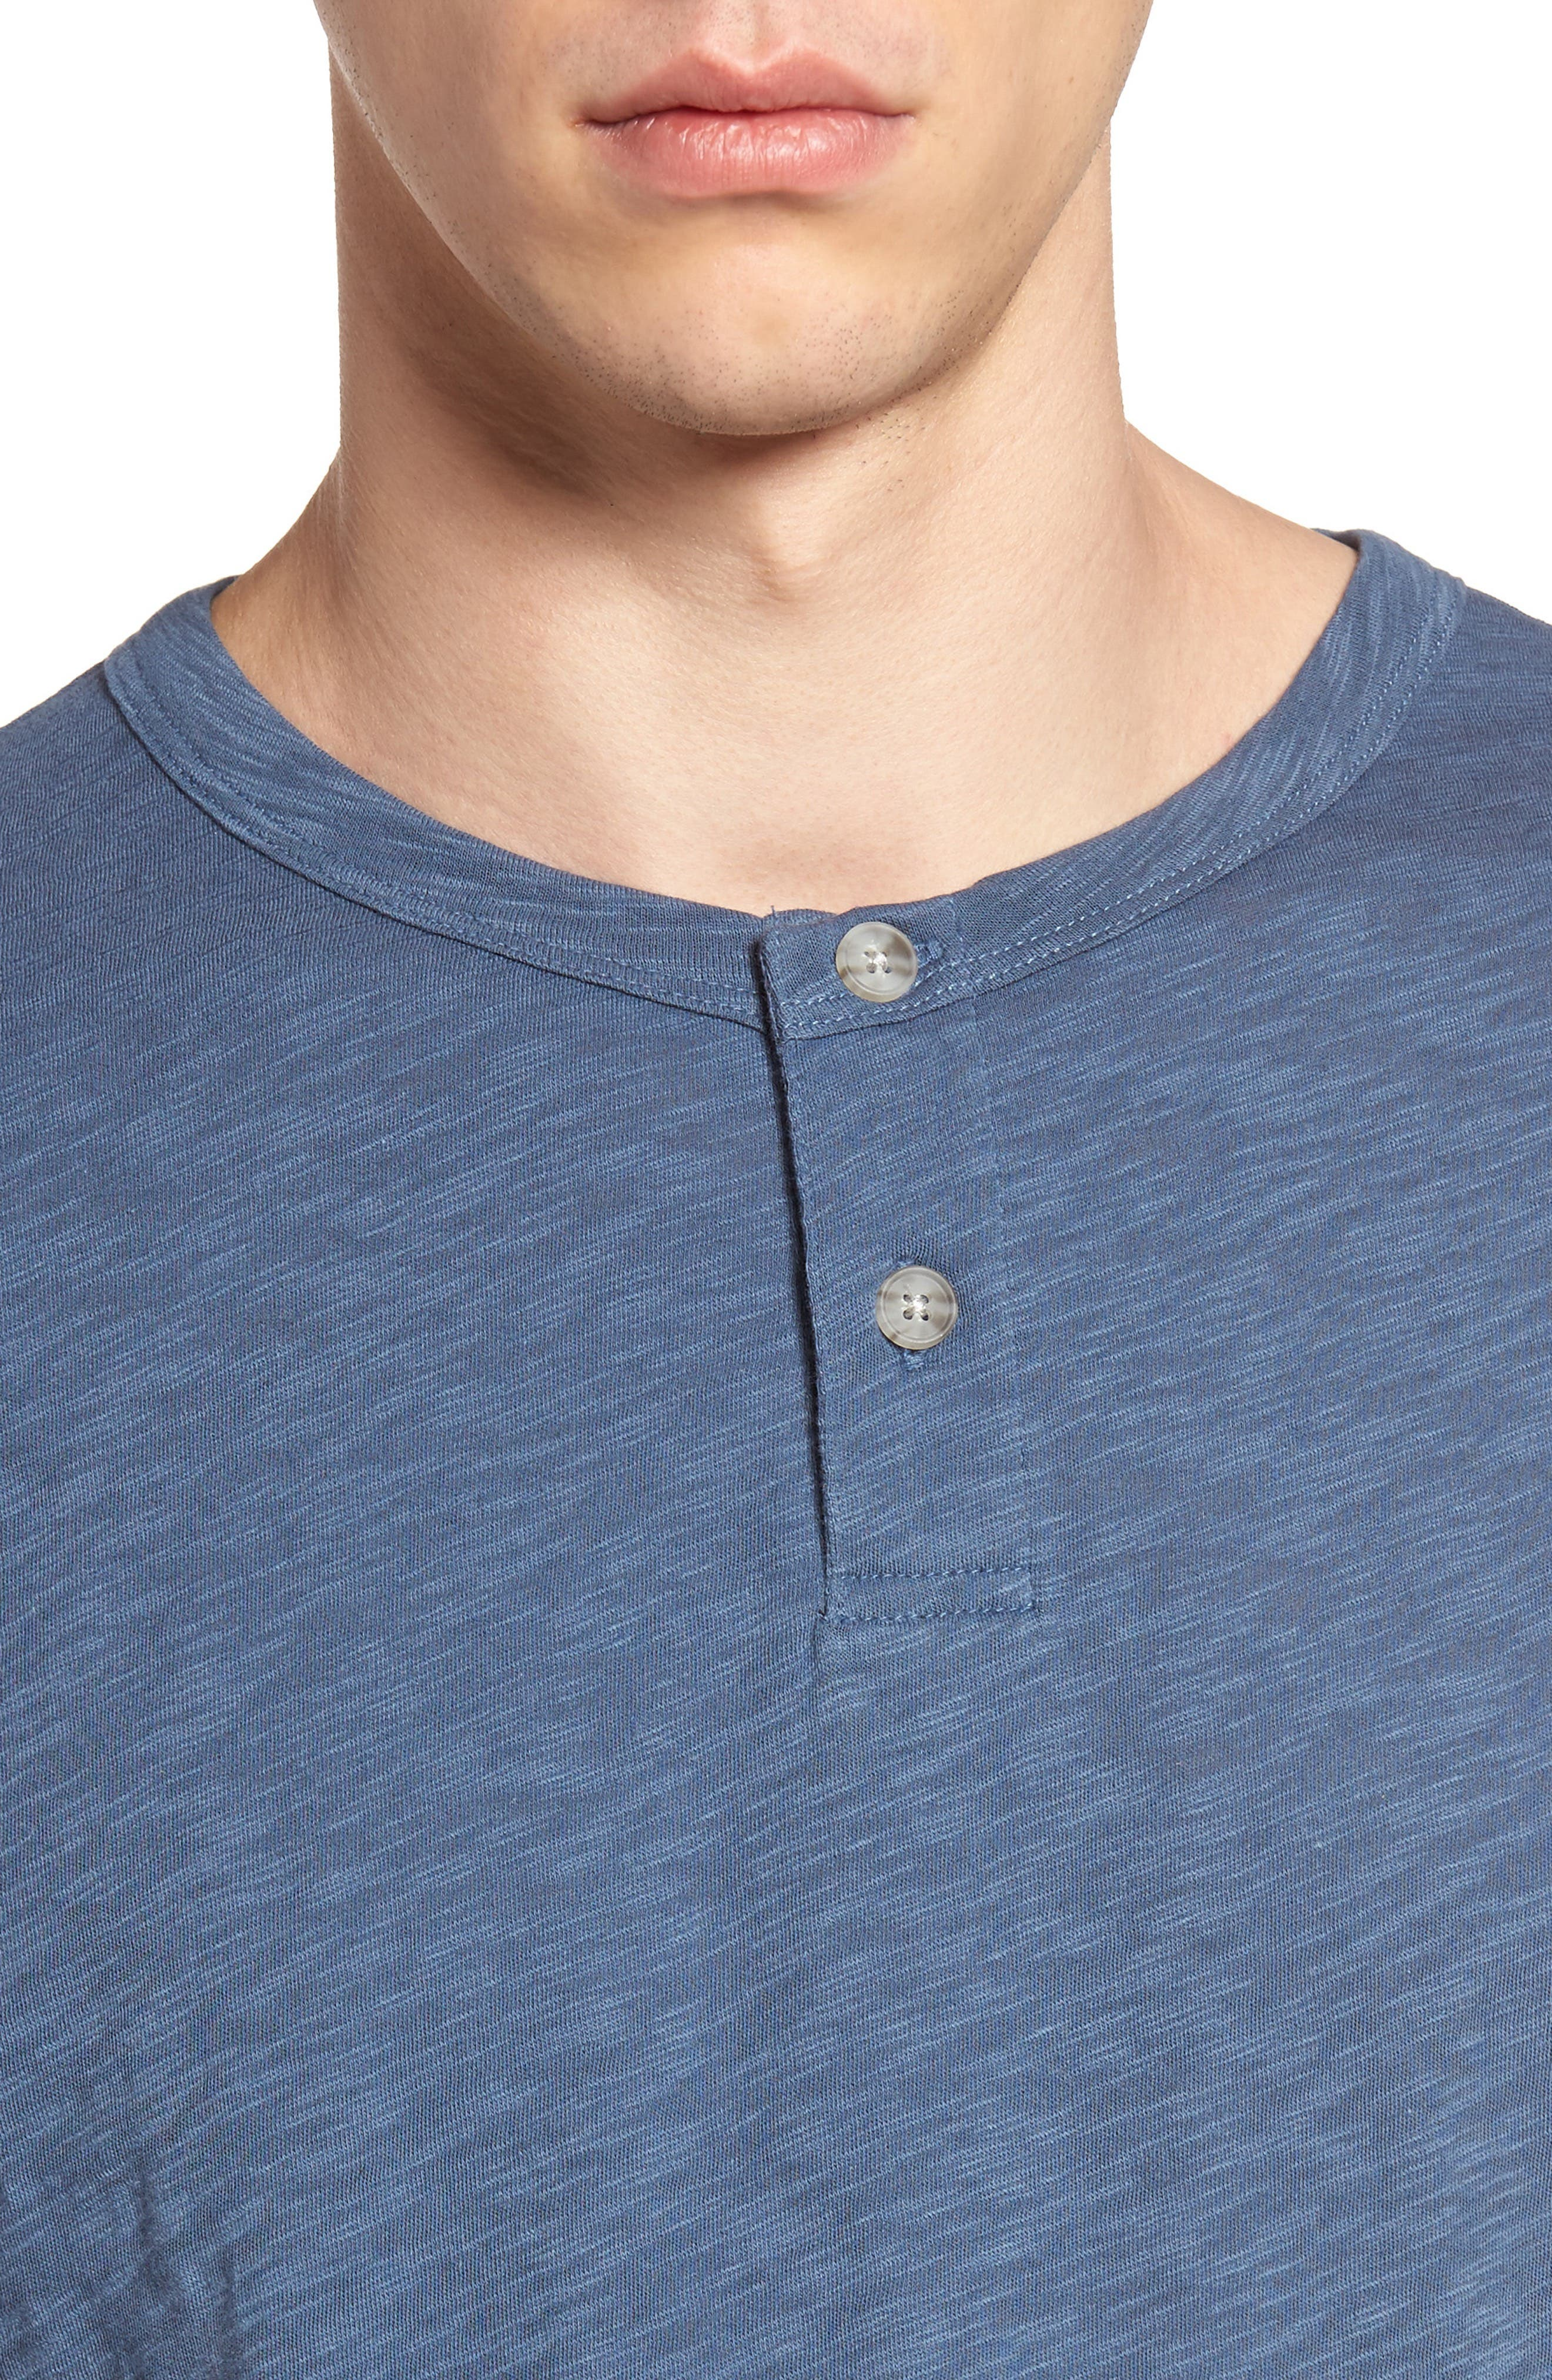 Gaskell Henley T-Shirt,                             Alternate thumbnail 27, color,